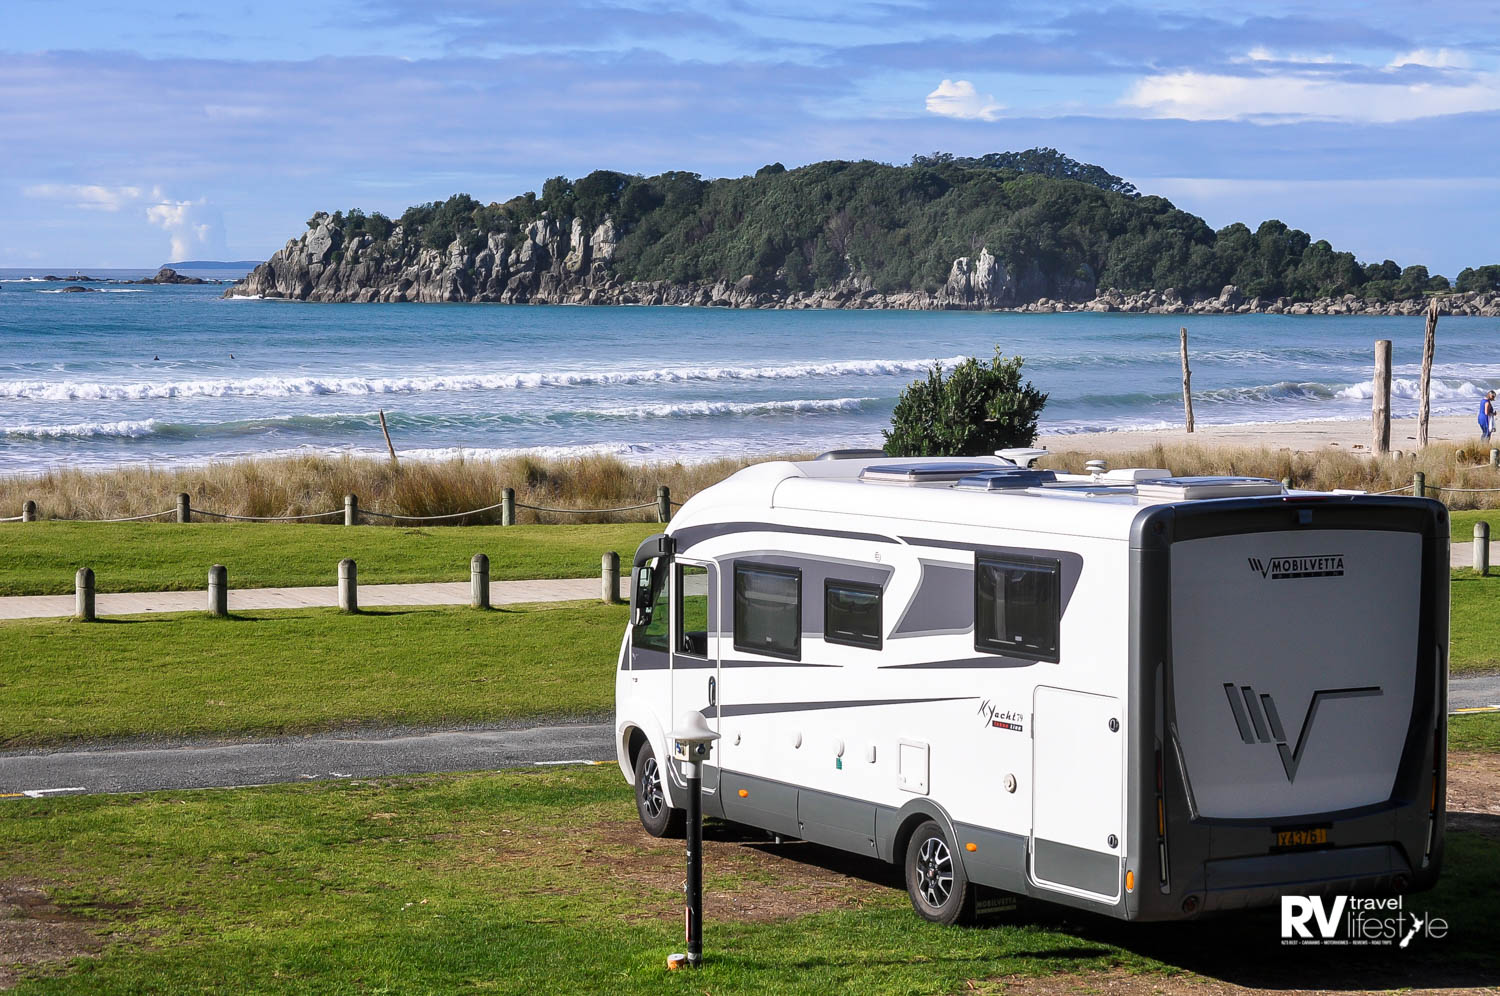 The Fiat Ducato chassis base, 150 Multijet with auto transmission – Mt Maunganui in the background